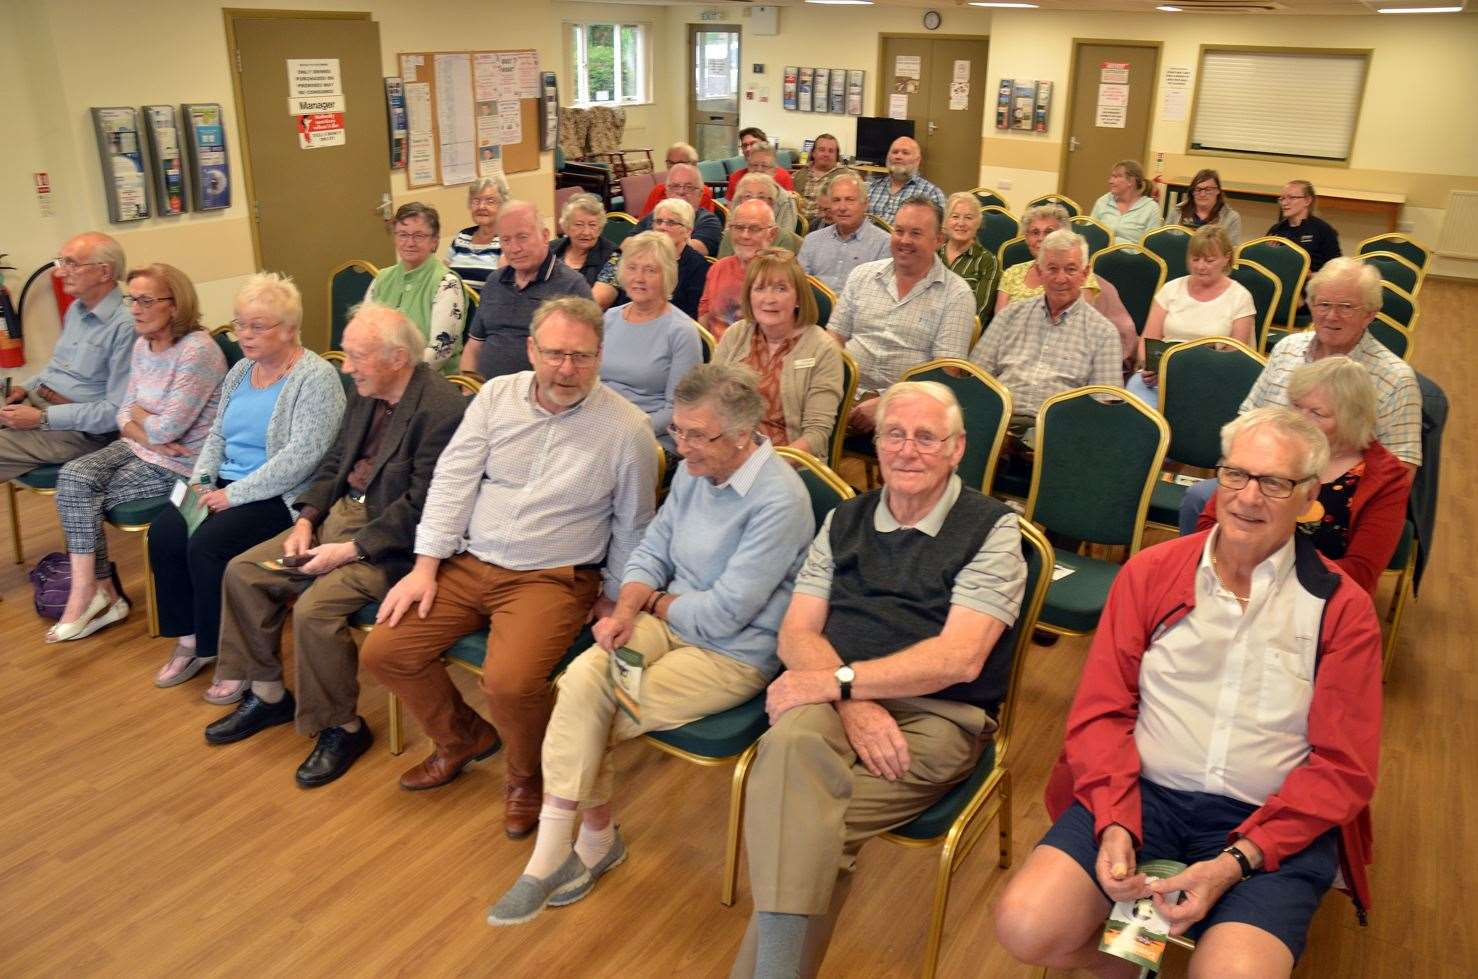 A public meeting to launch a new leaflet about Captain Matthew Flinders, held at the Ruby Hunt Centre, Donington, in June 2019.Photo: 030619-8.